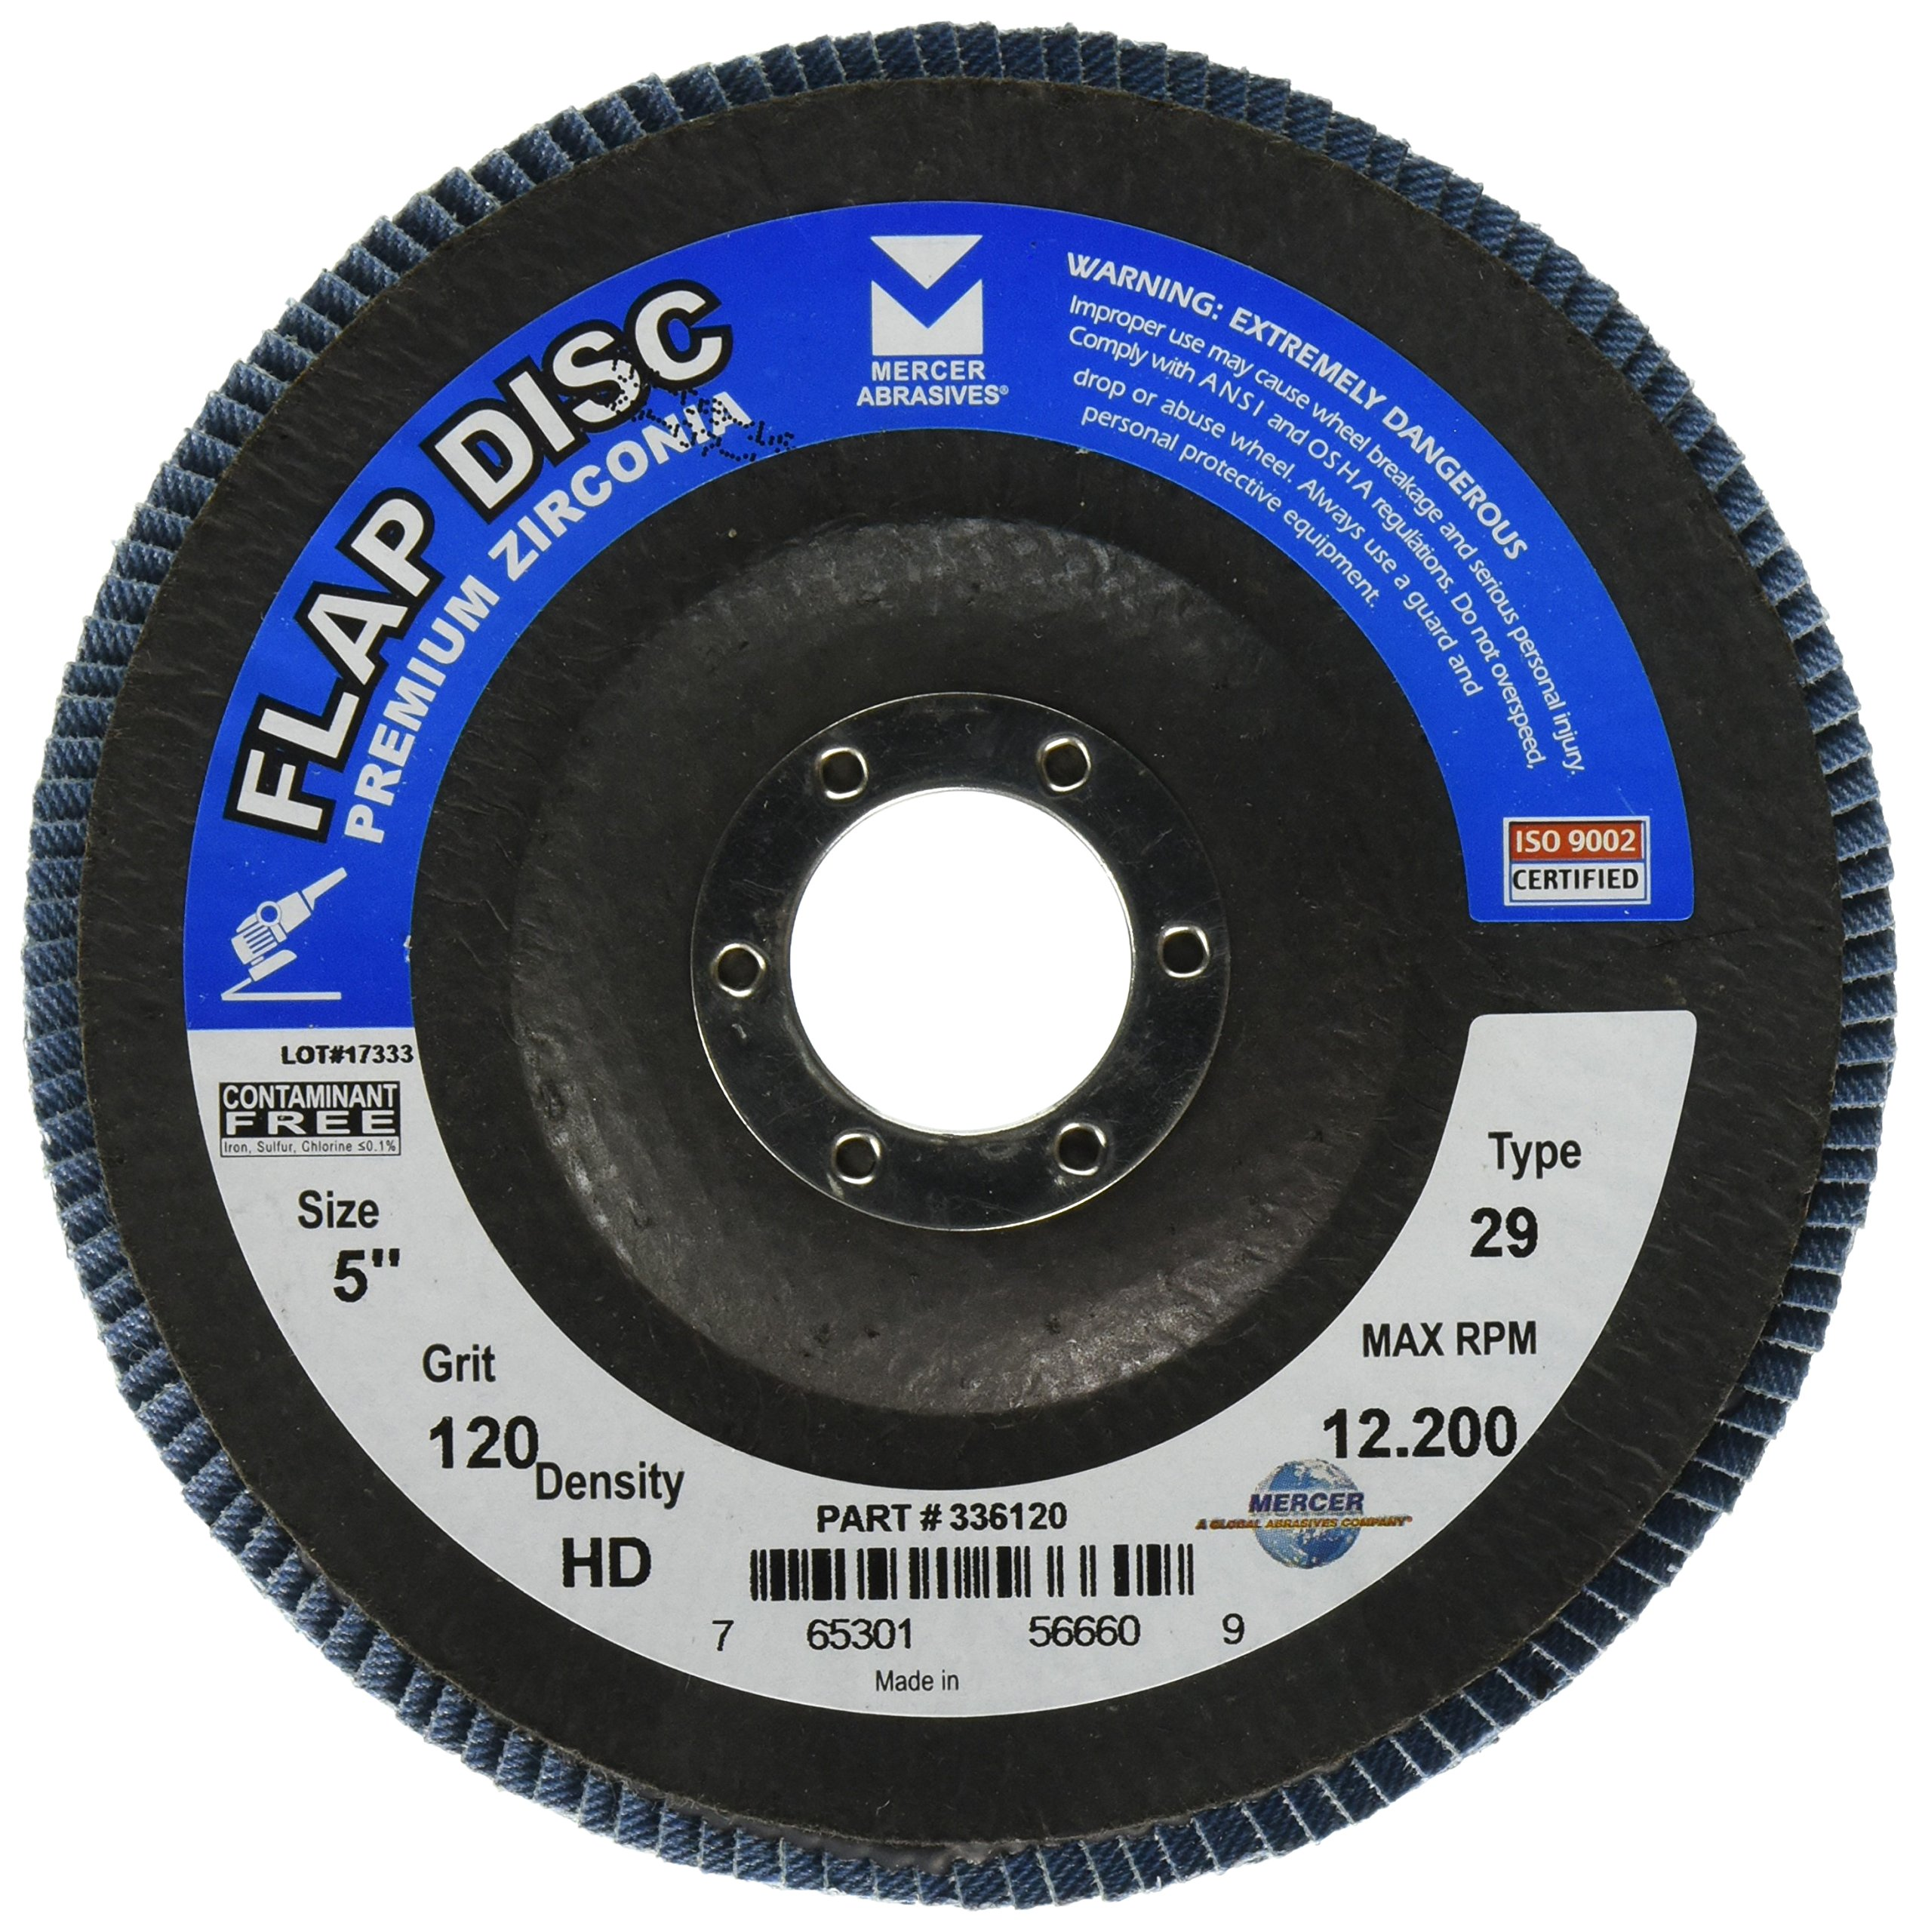 "Mercer Industries 336120 Zirconia Flap Disc, High Density, Type 29, 5"" x 7/8"", Grit 120, 10 Pack"